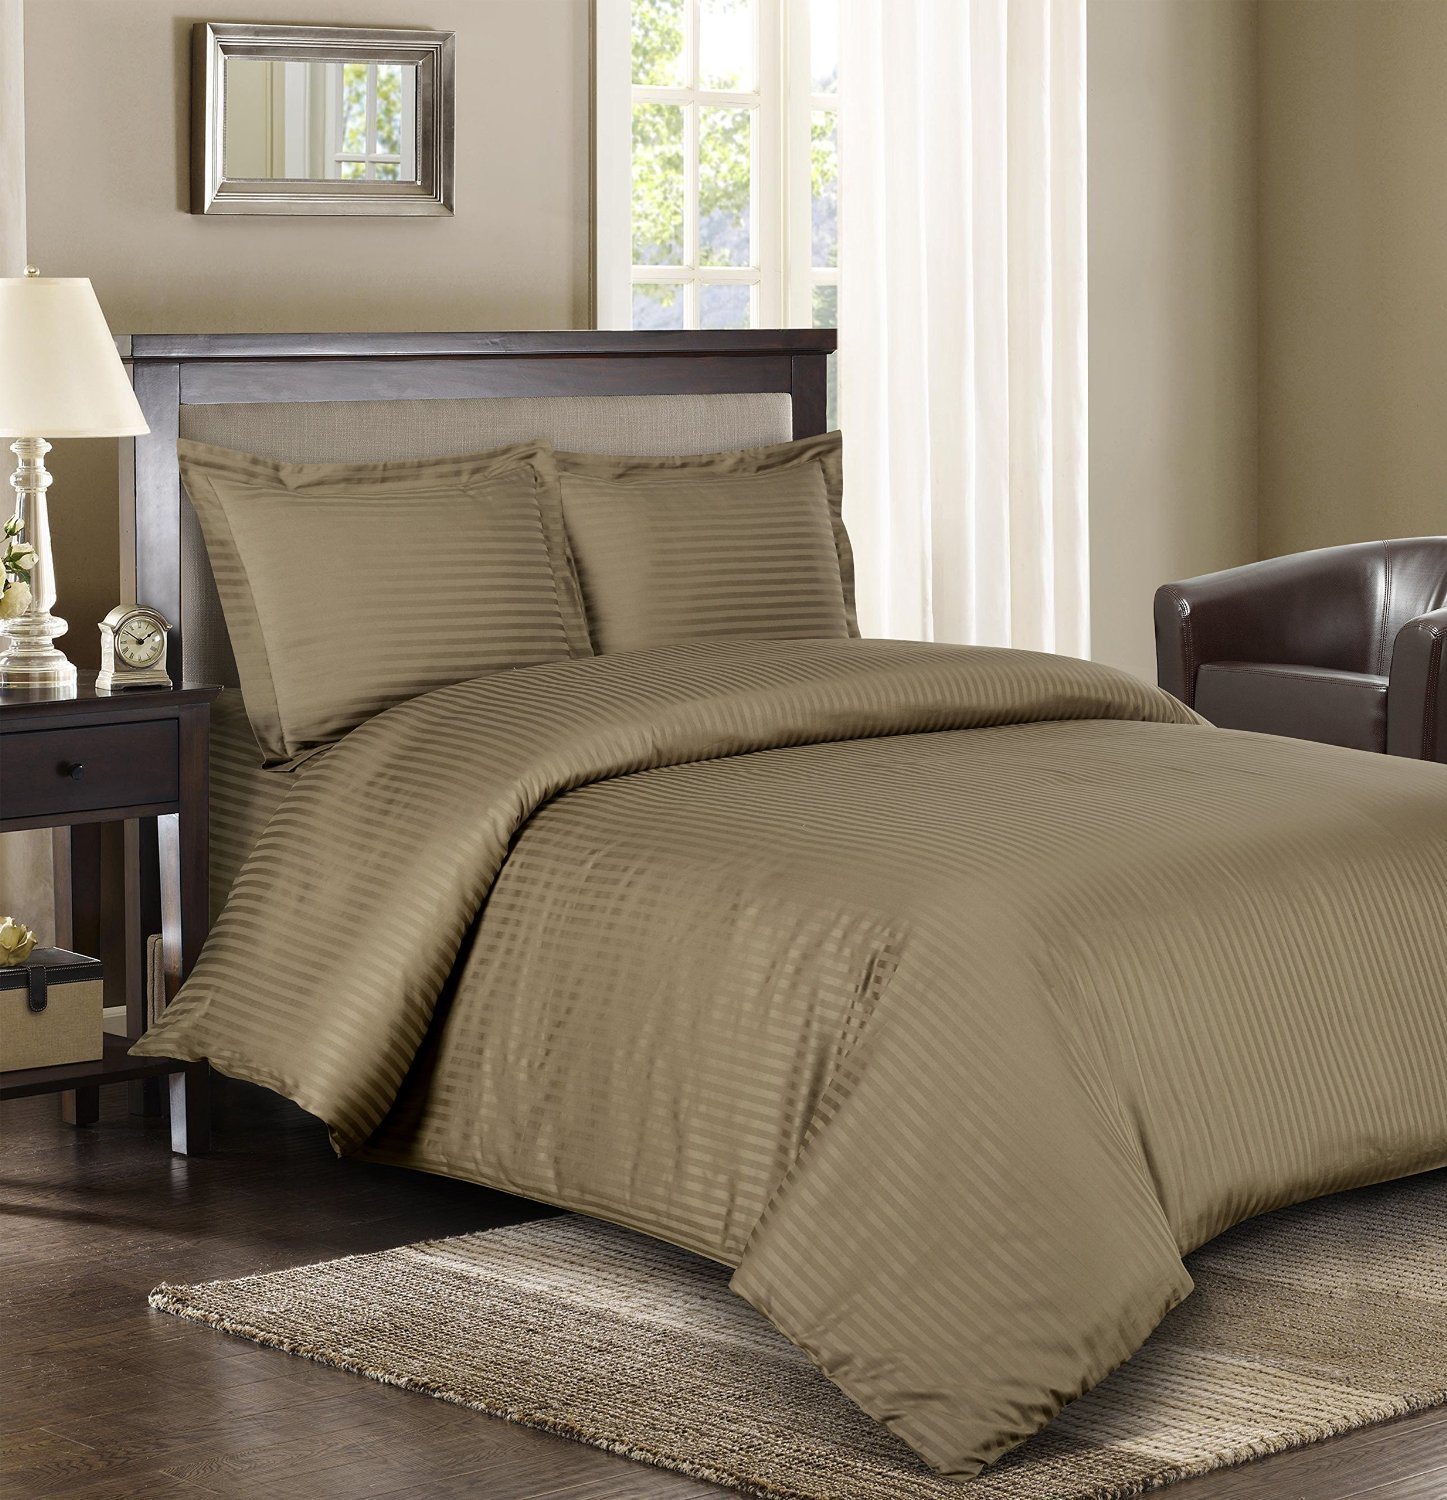 Twin-Extra-Long Duvet-Cover 100-Percent Cotton Royal Hotels Striped Taupe 300-Thread-Count 2pc Twin Sateen Striped 100/% Cotton Royal Hotel Bedding COMIN16JU008102